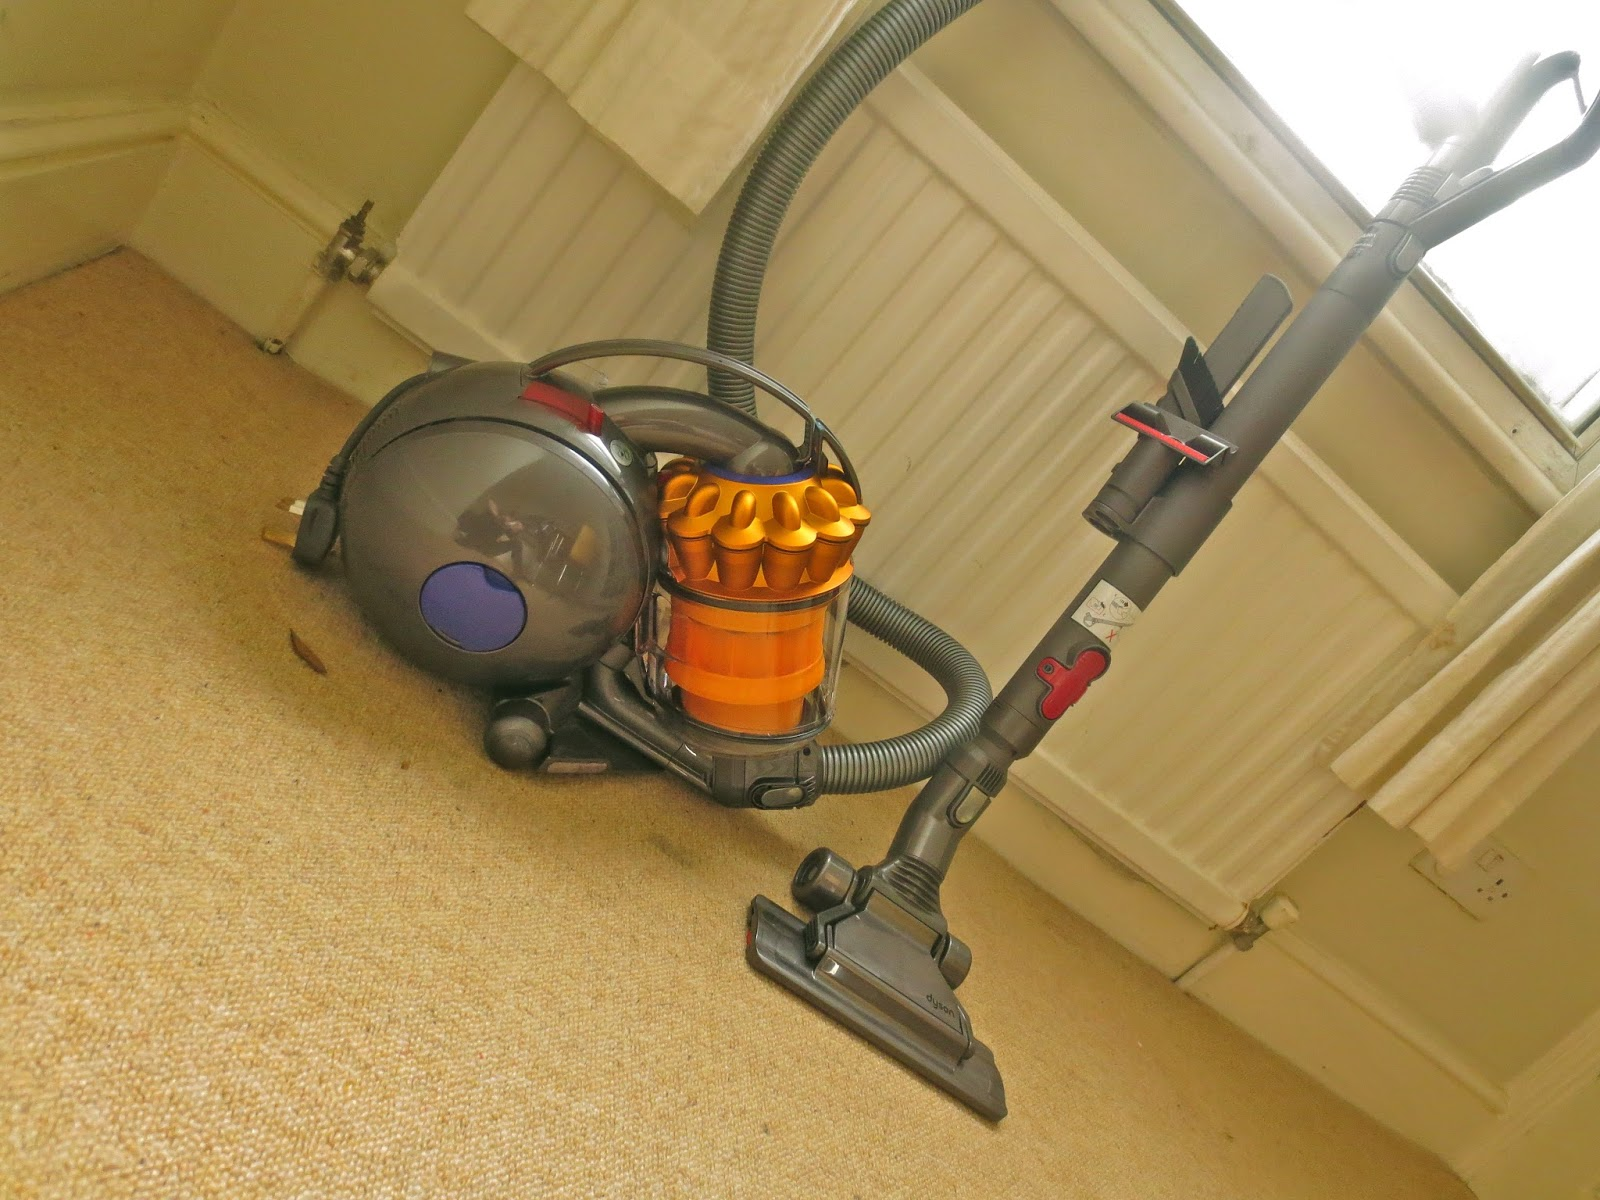 The Hussy London Housewife Dyson Dc38 Vacuum Cleaner